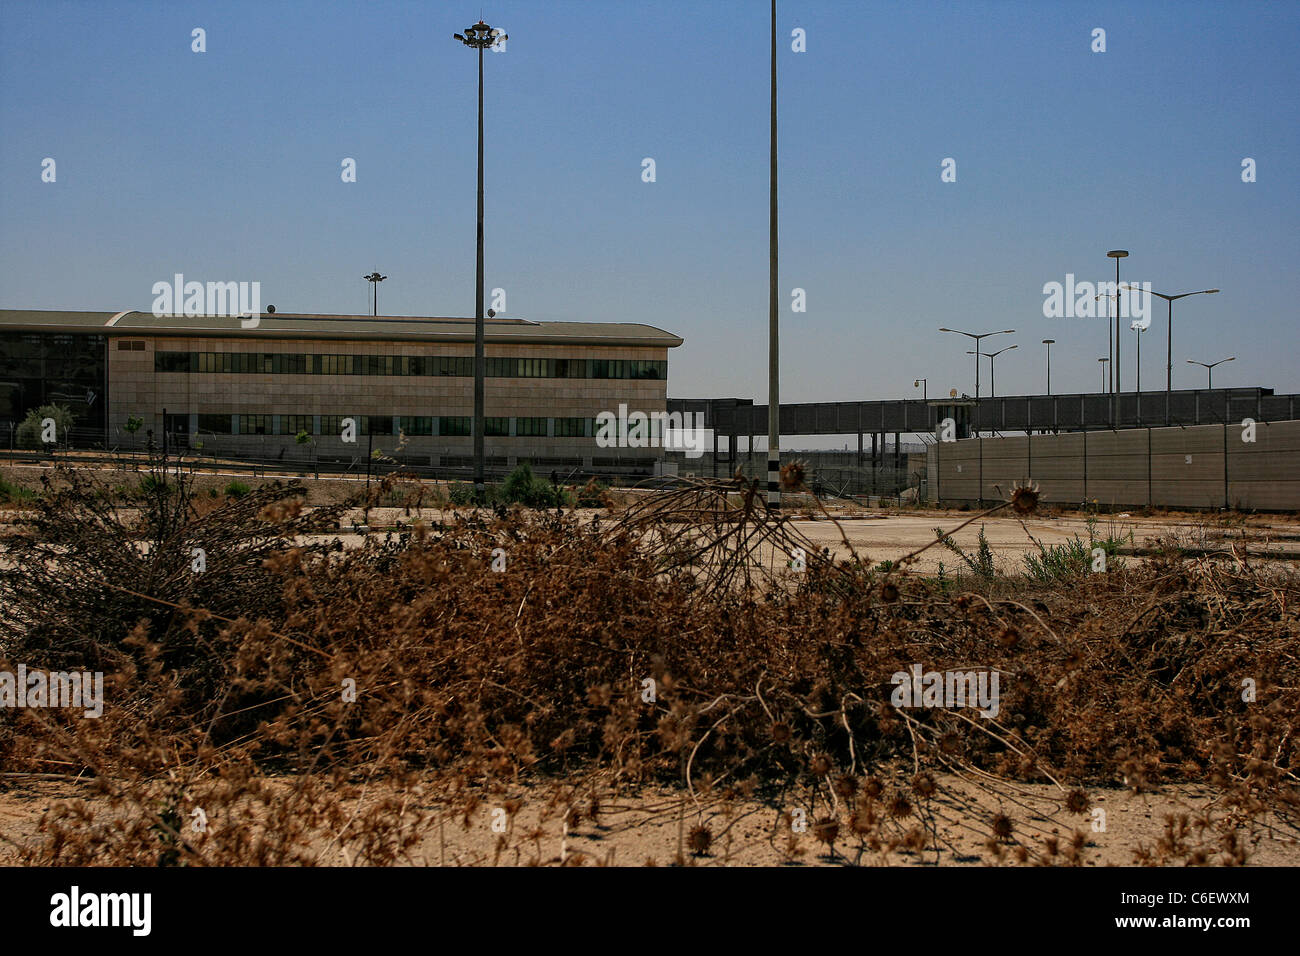 The terminals of the Erez crossing point between the Gaza strip and Southern Israel - Stock Image